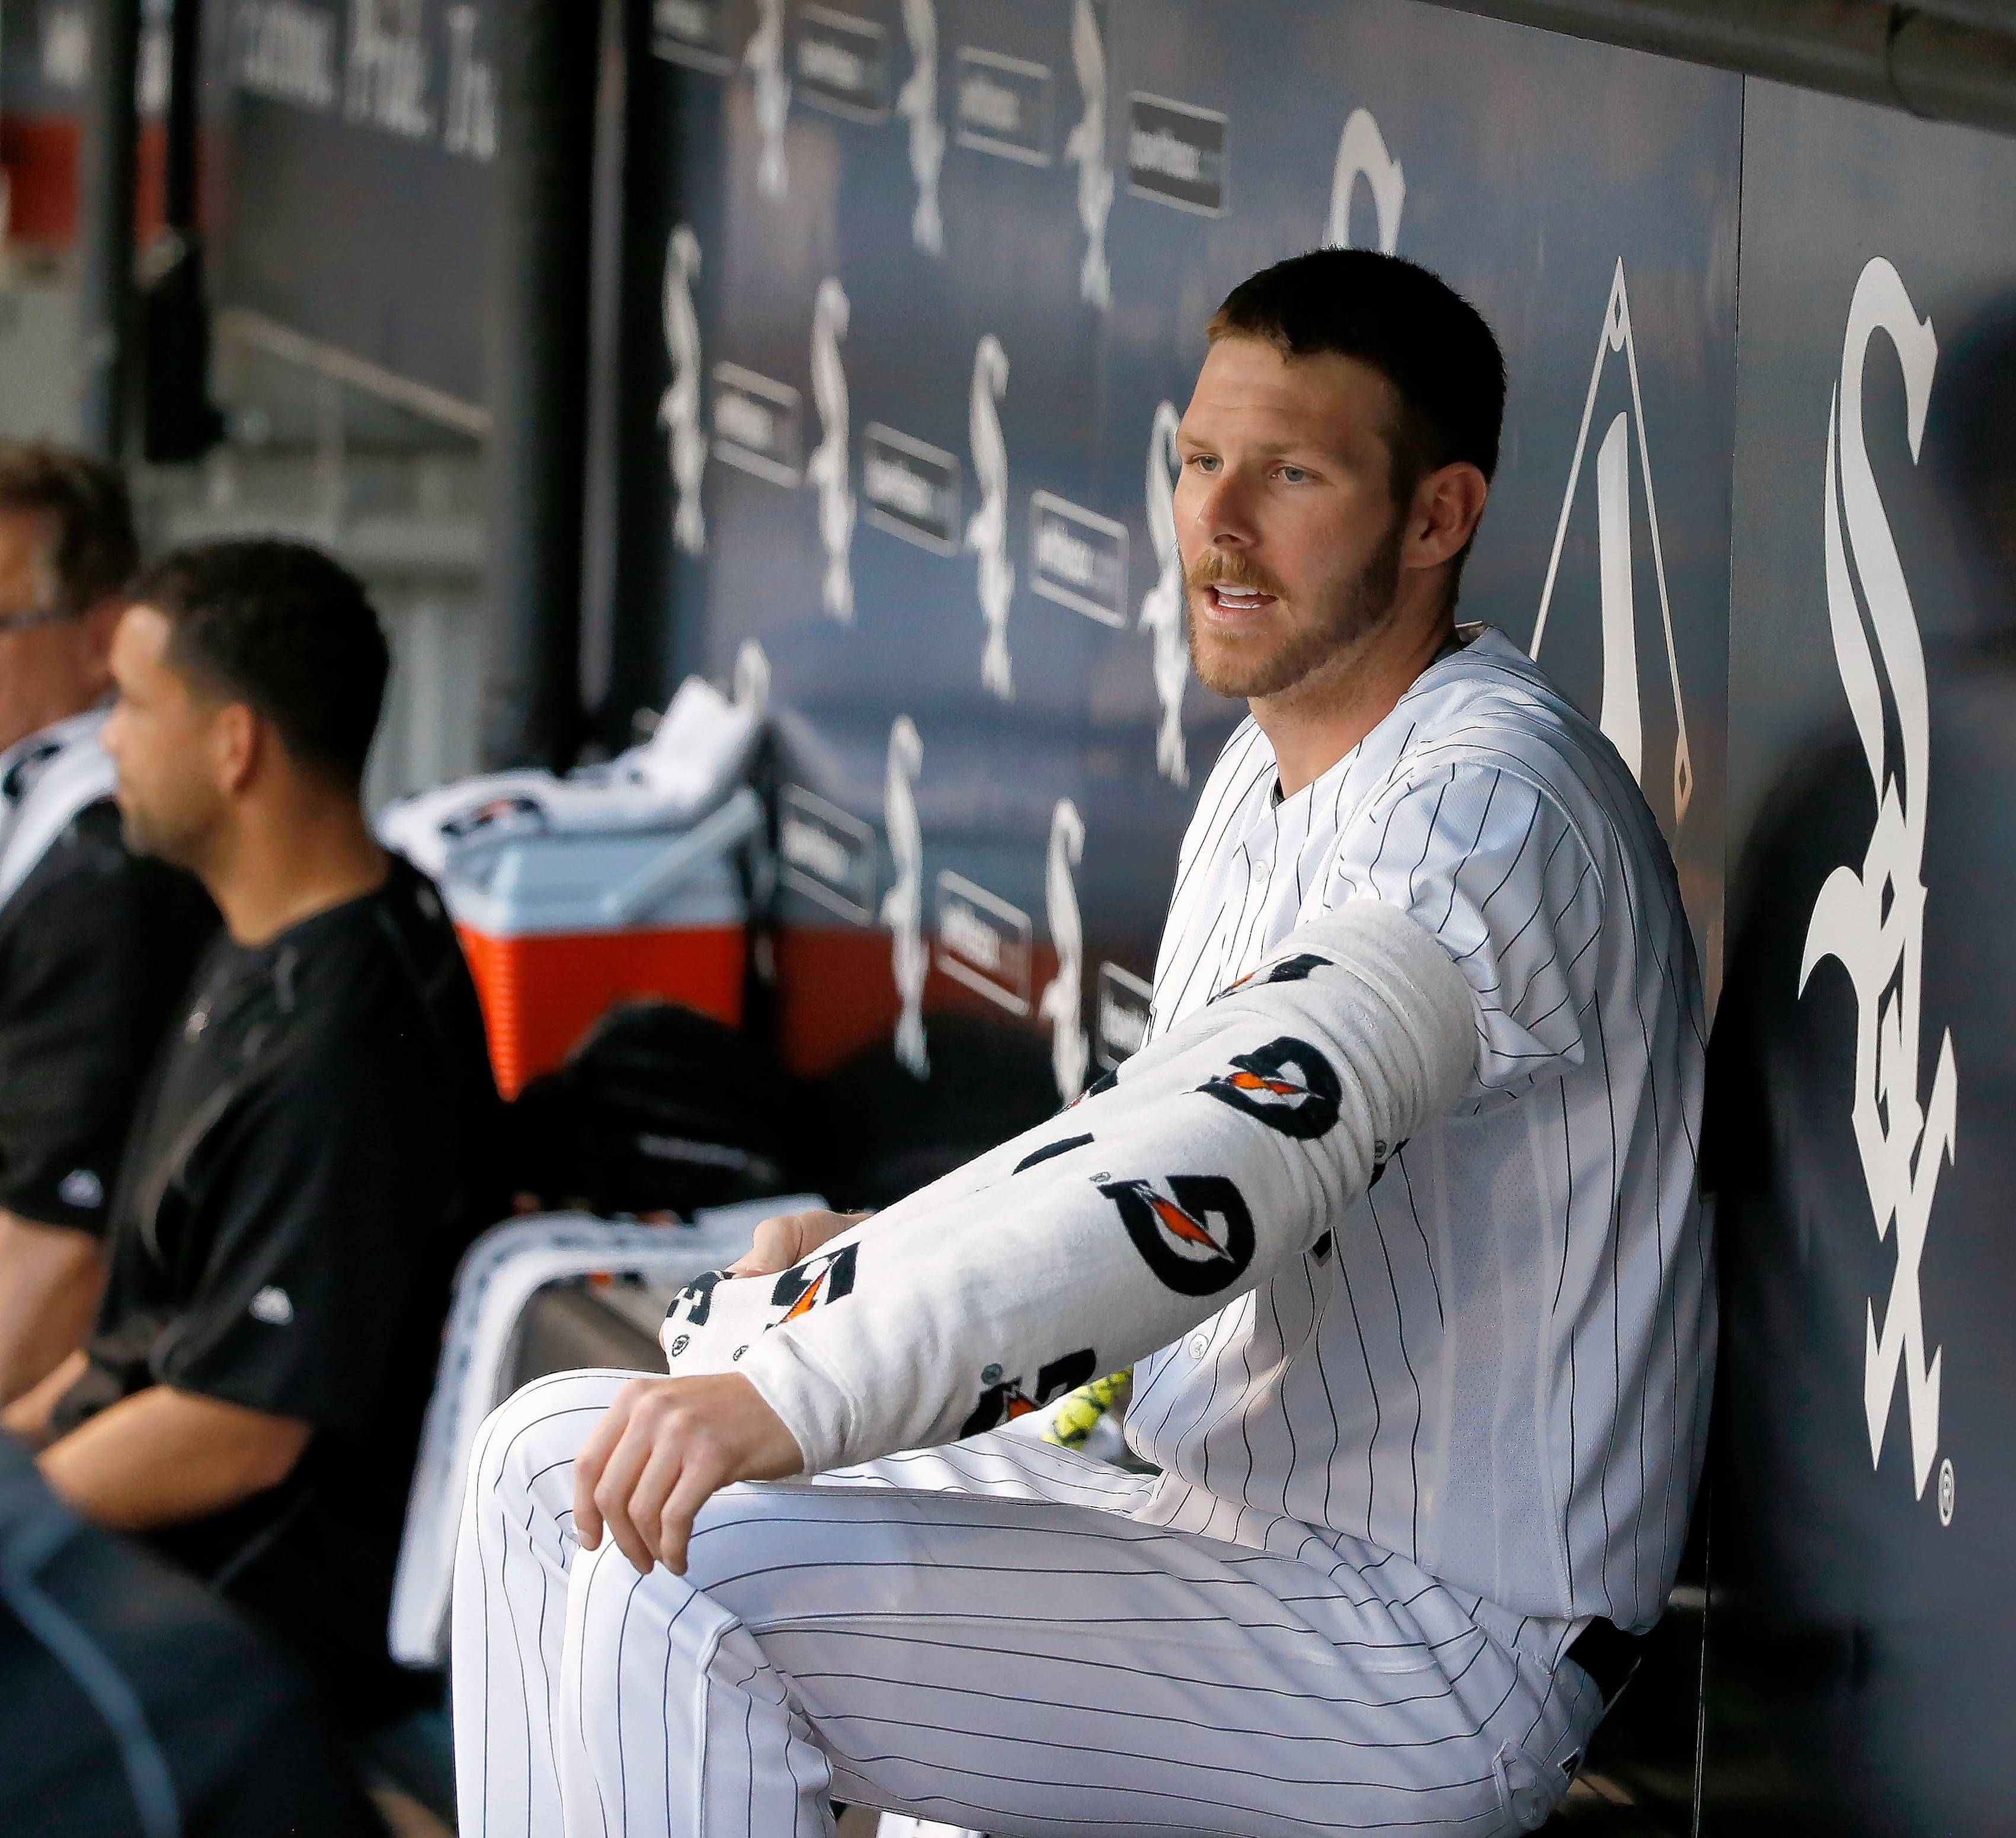 Chicago White Sox starting pitcher Chris Sale finally showed the fans that he is human. His recent dip is part of a team-wide struggle that starts with an underproducing offense, says insider Joe Ostrowski.